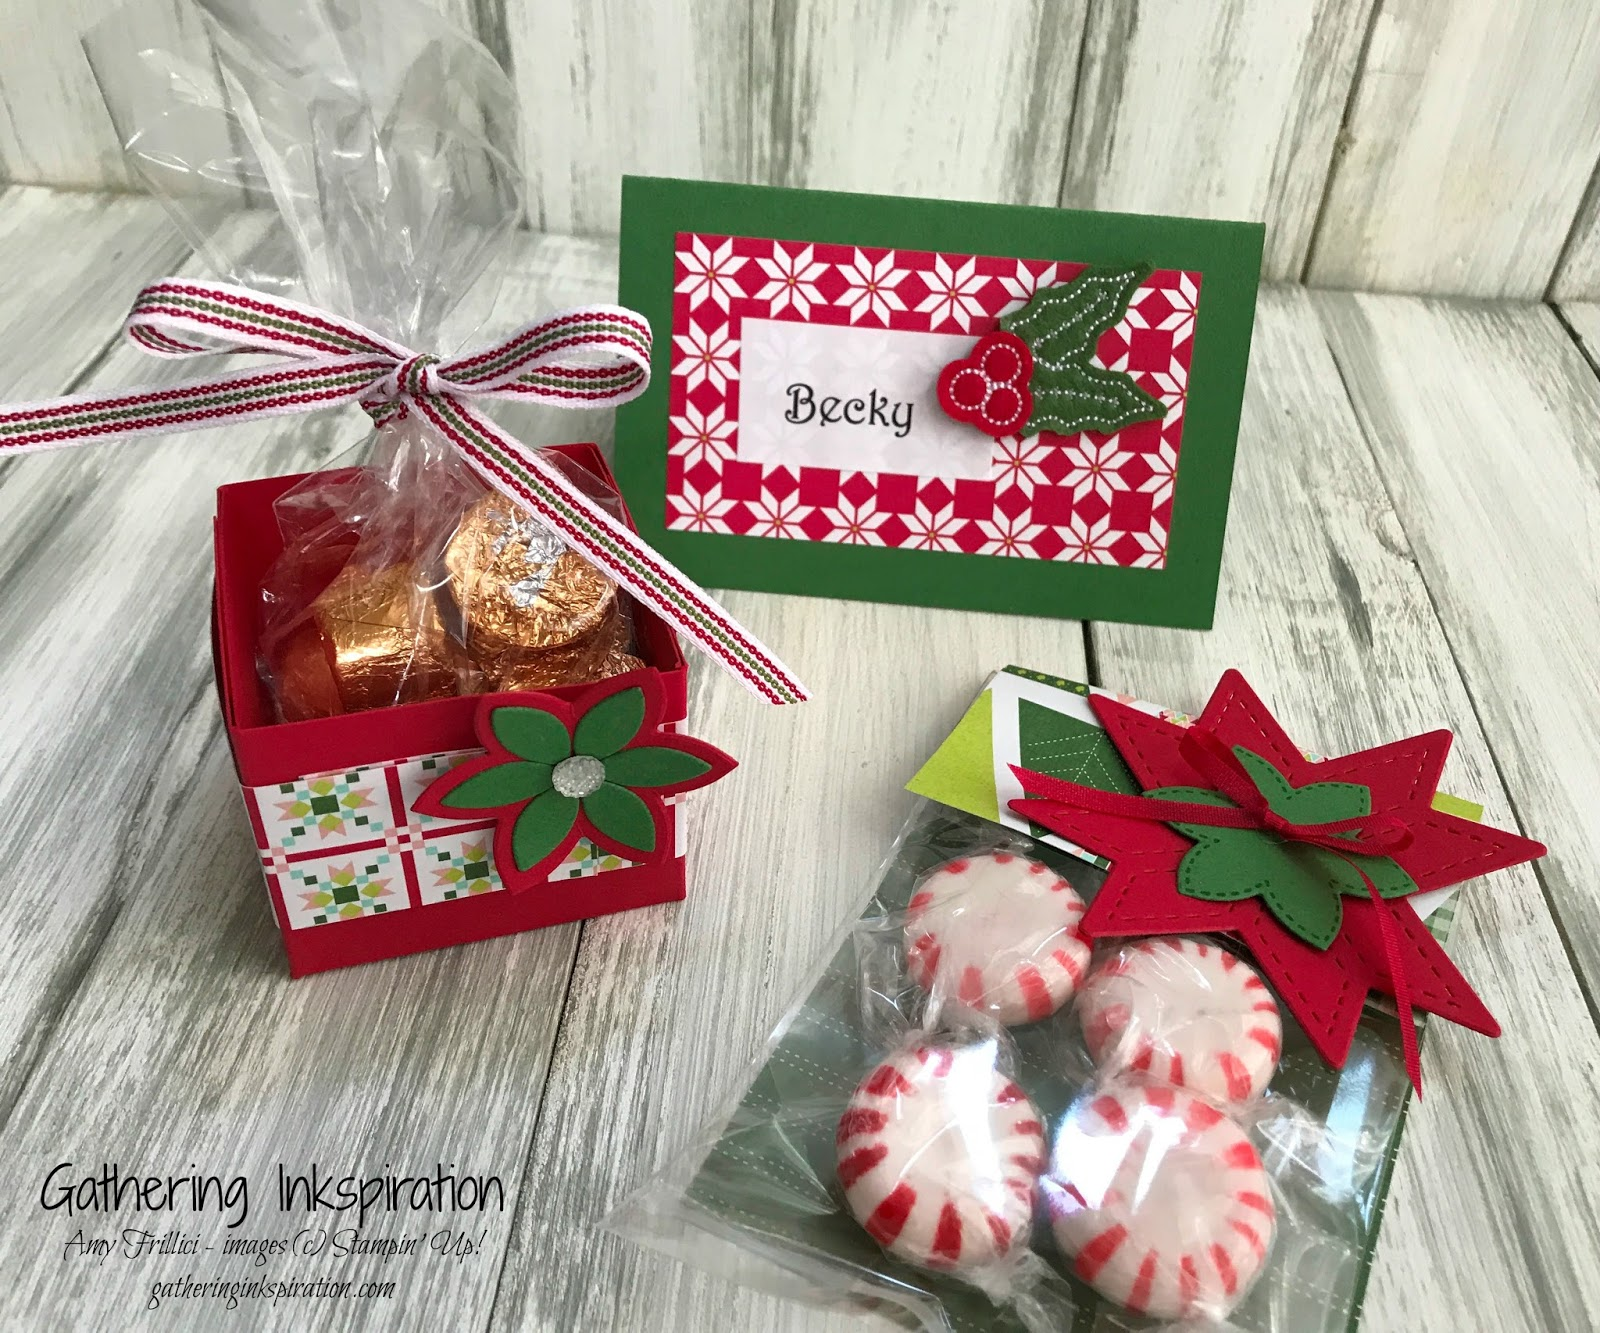 Gathering Inkspiration: Quilted Christmas Treat & Gift Ideas